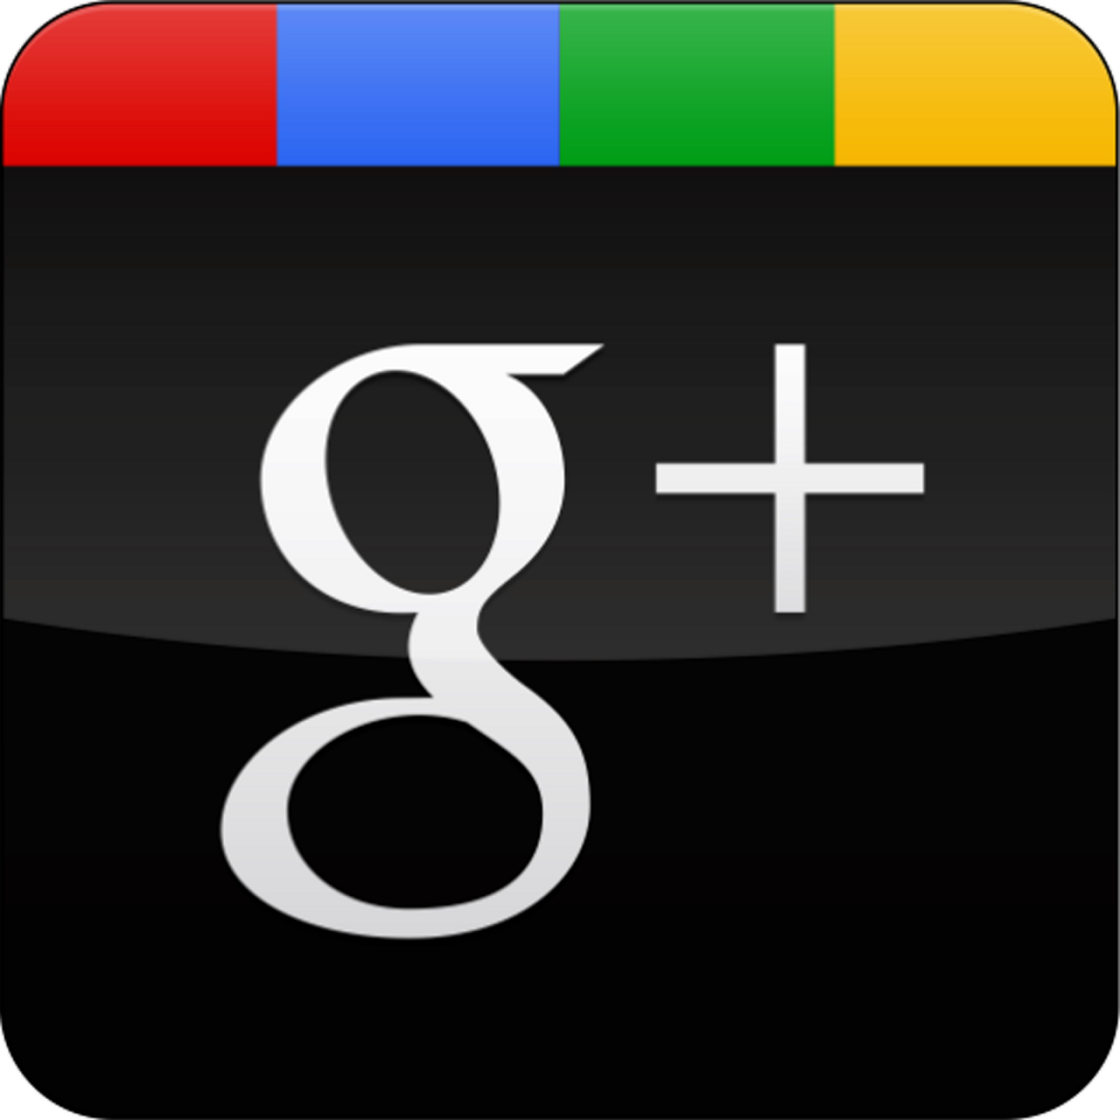 google plus logo Collection